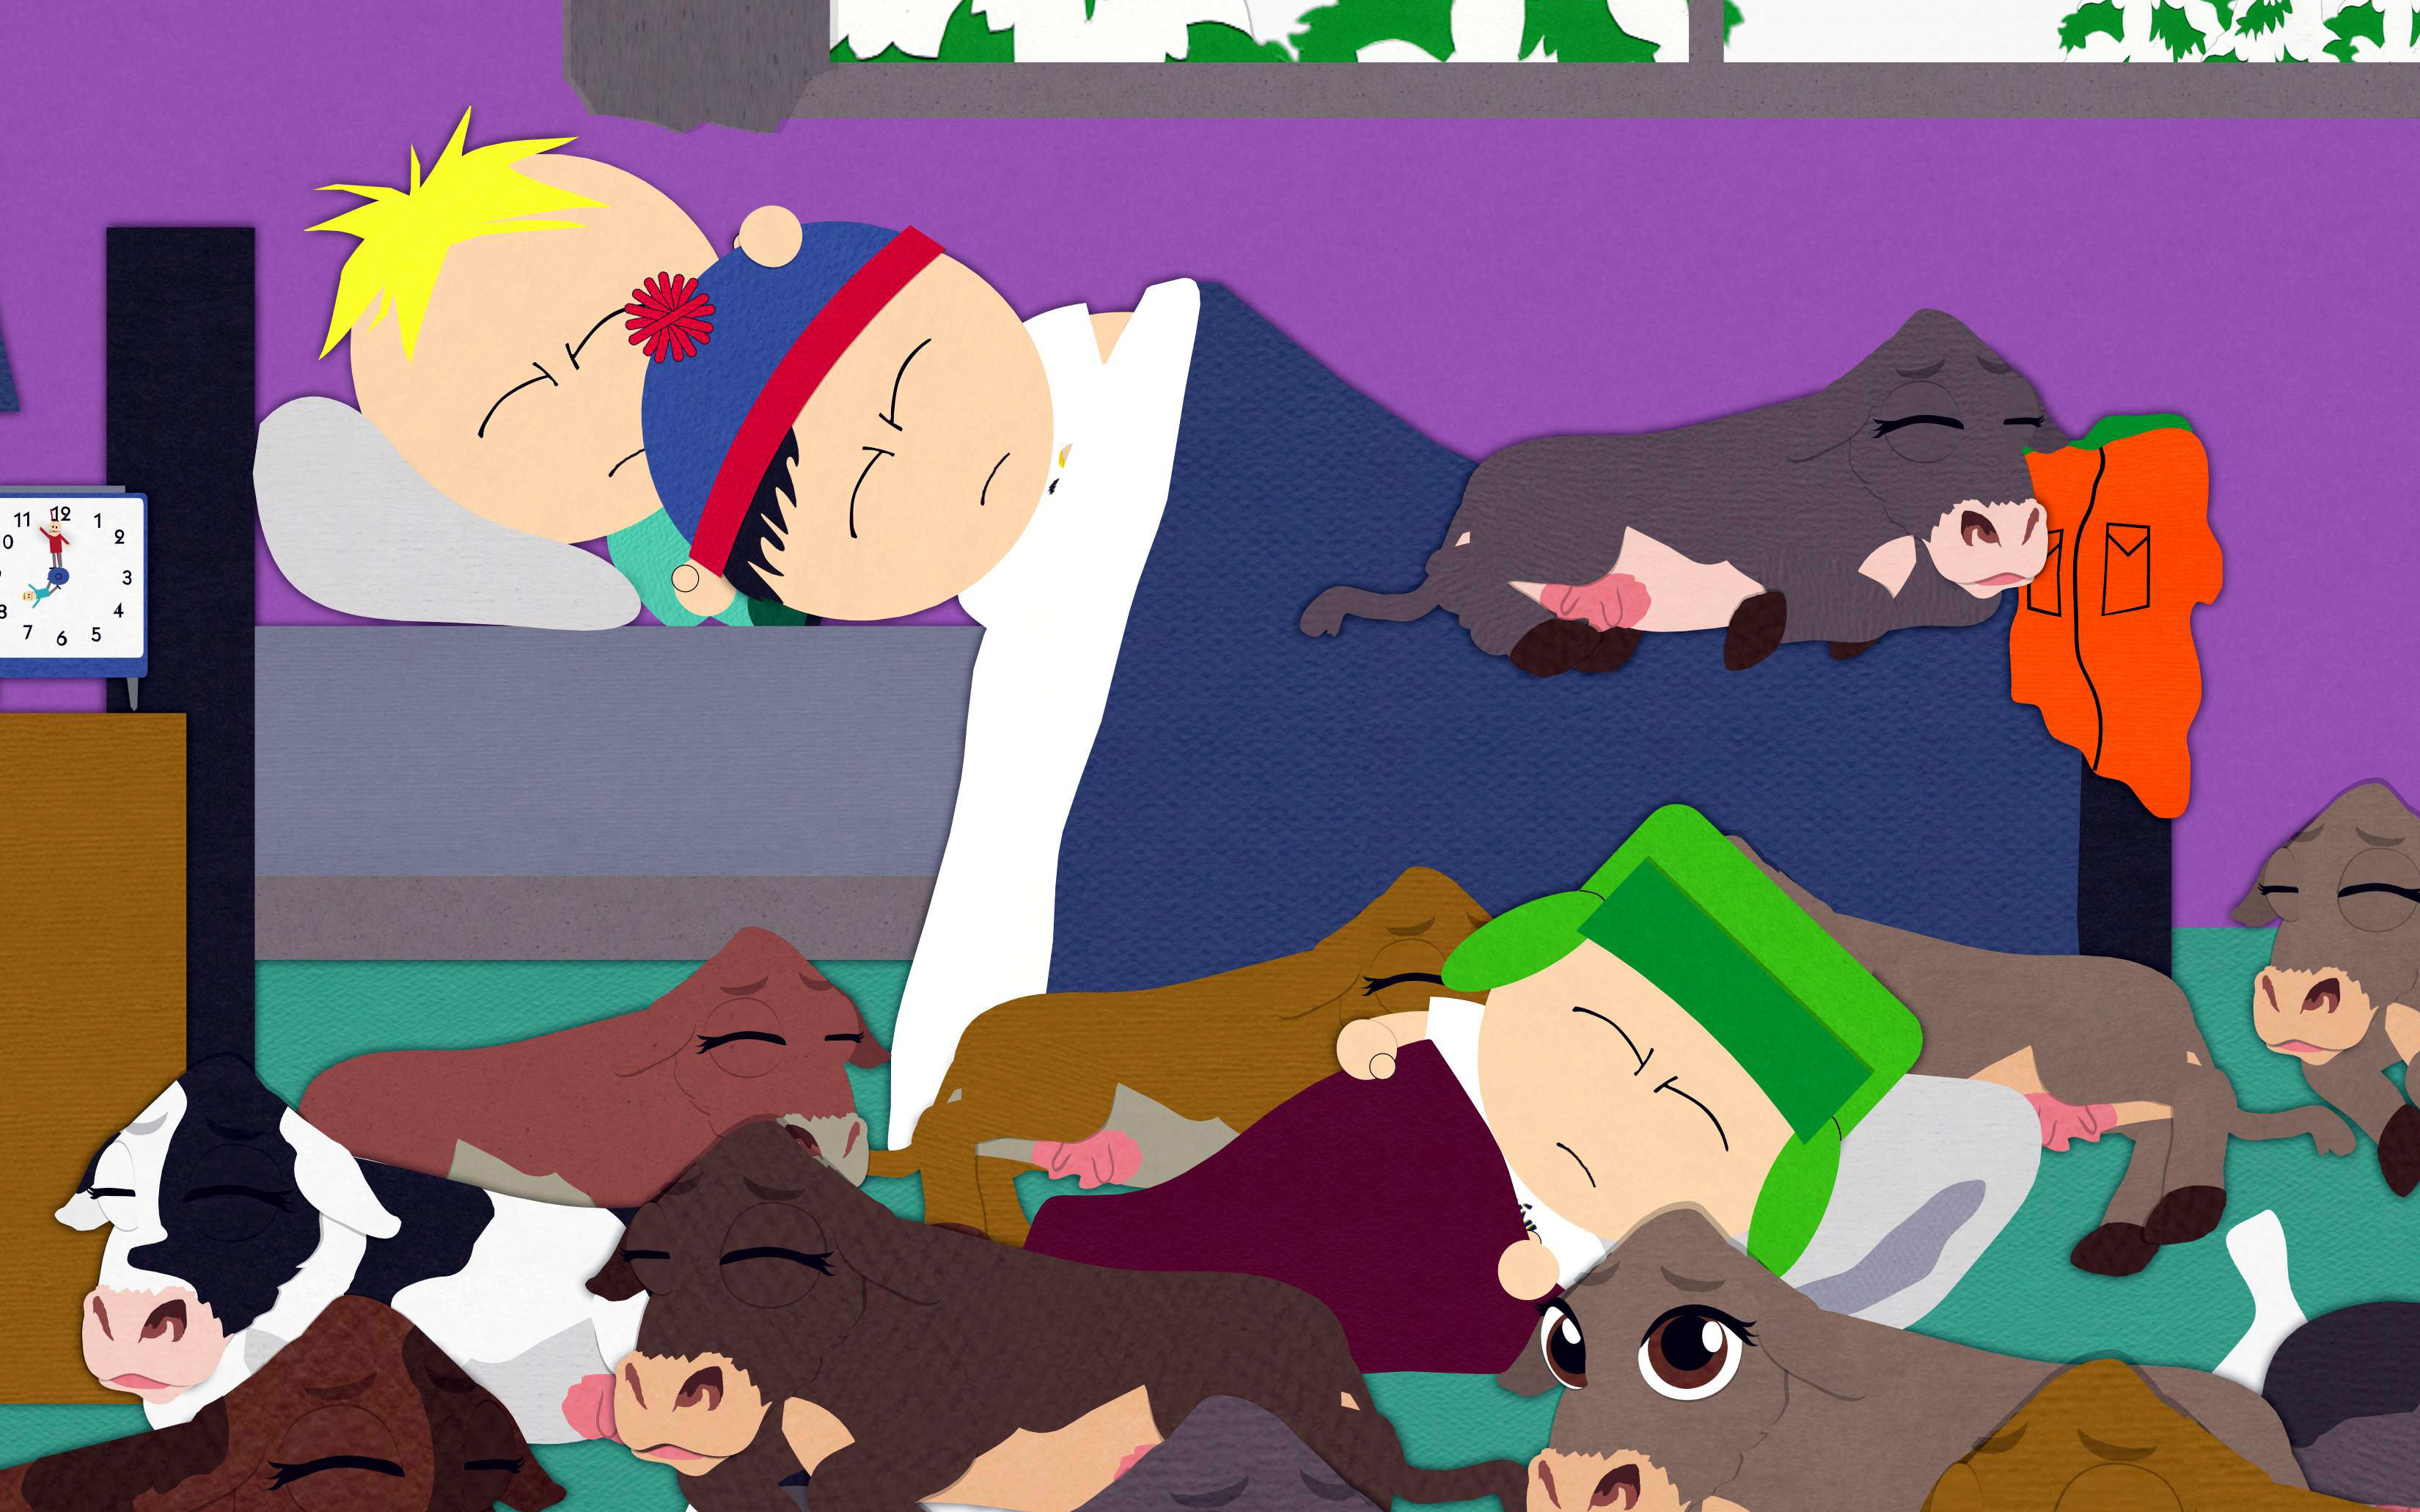 South park hd wallpapers pictures images - South park wallpaper butters ...